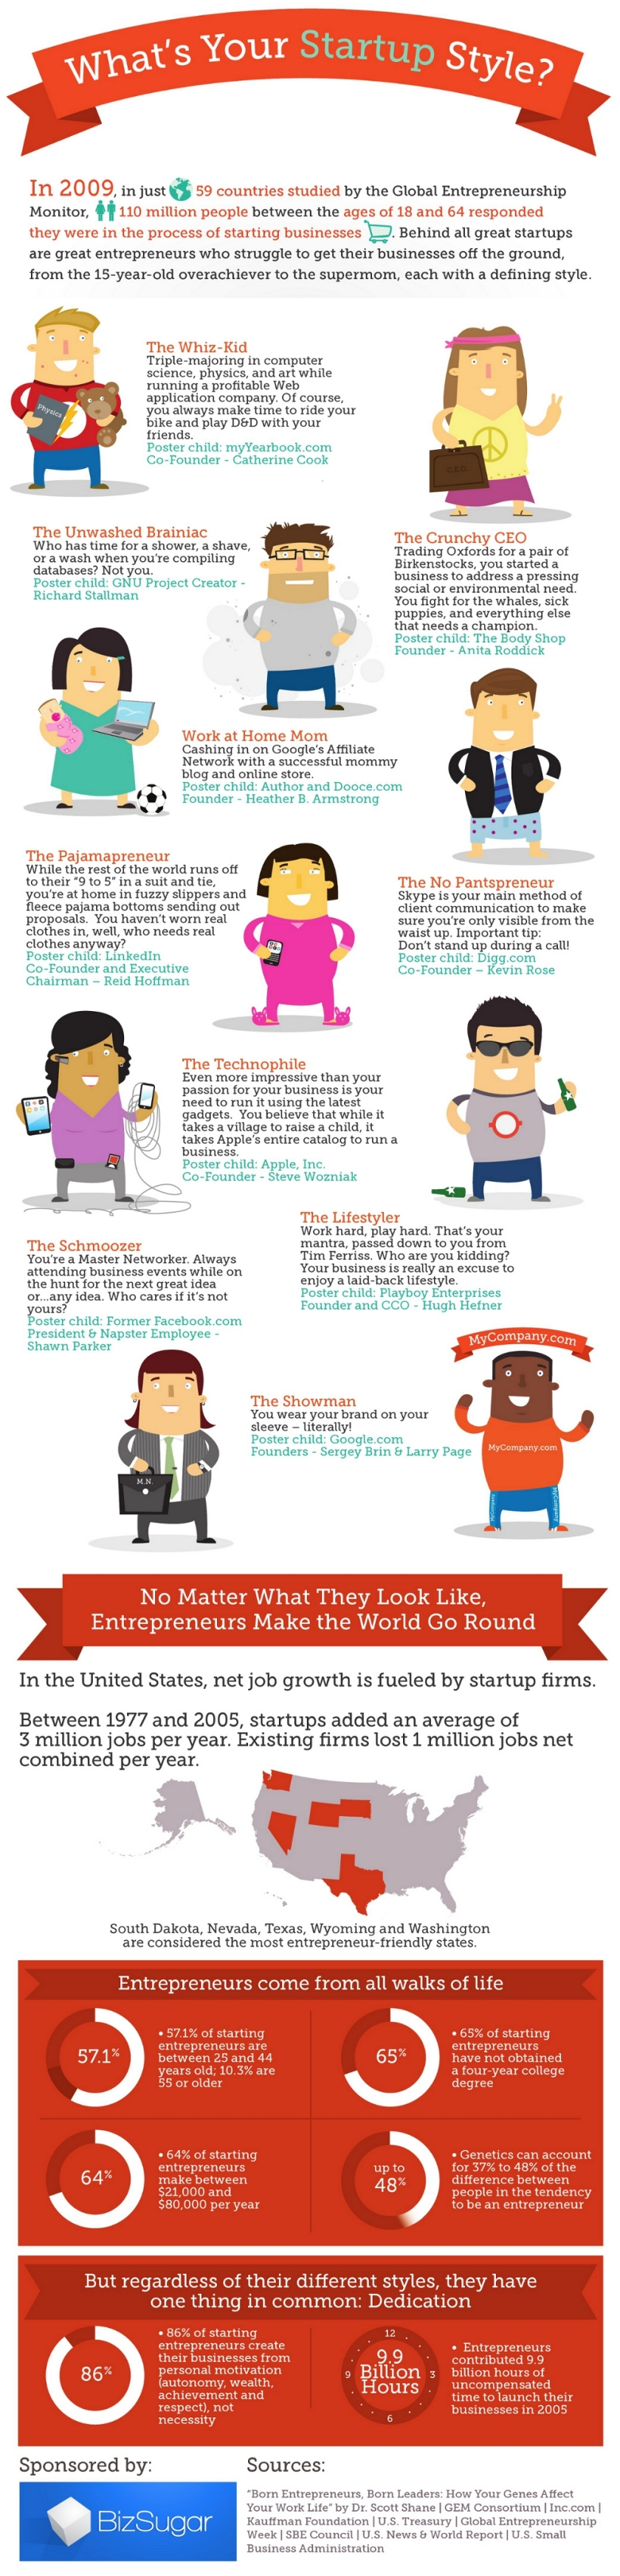 10-entrepreneurial-styles-list-infographic